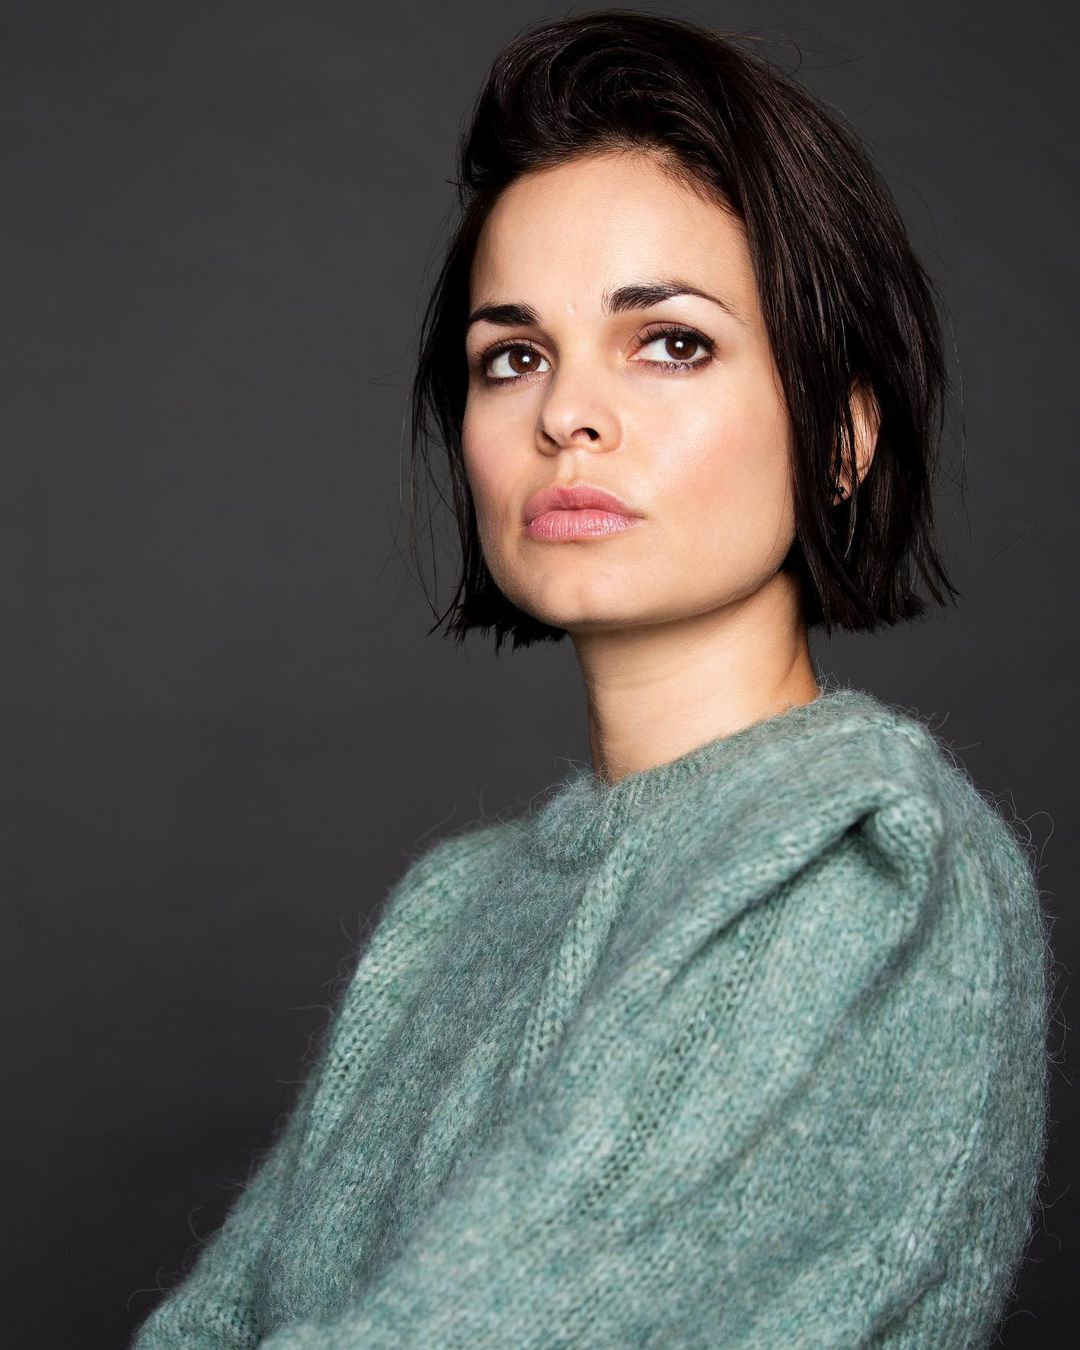 Lina Esco Wiki, Biography, Age Family, Career, Net Worth, and Instagram